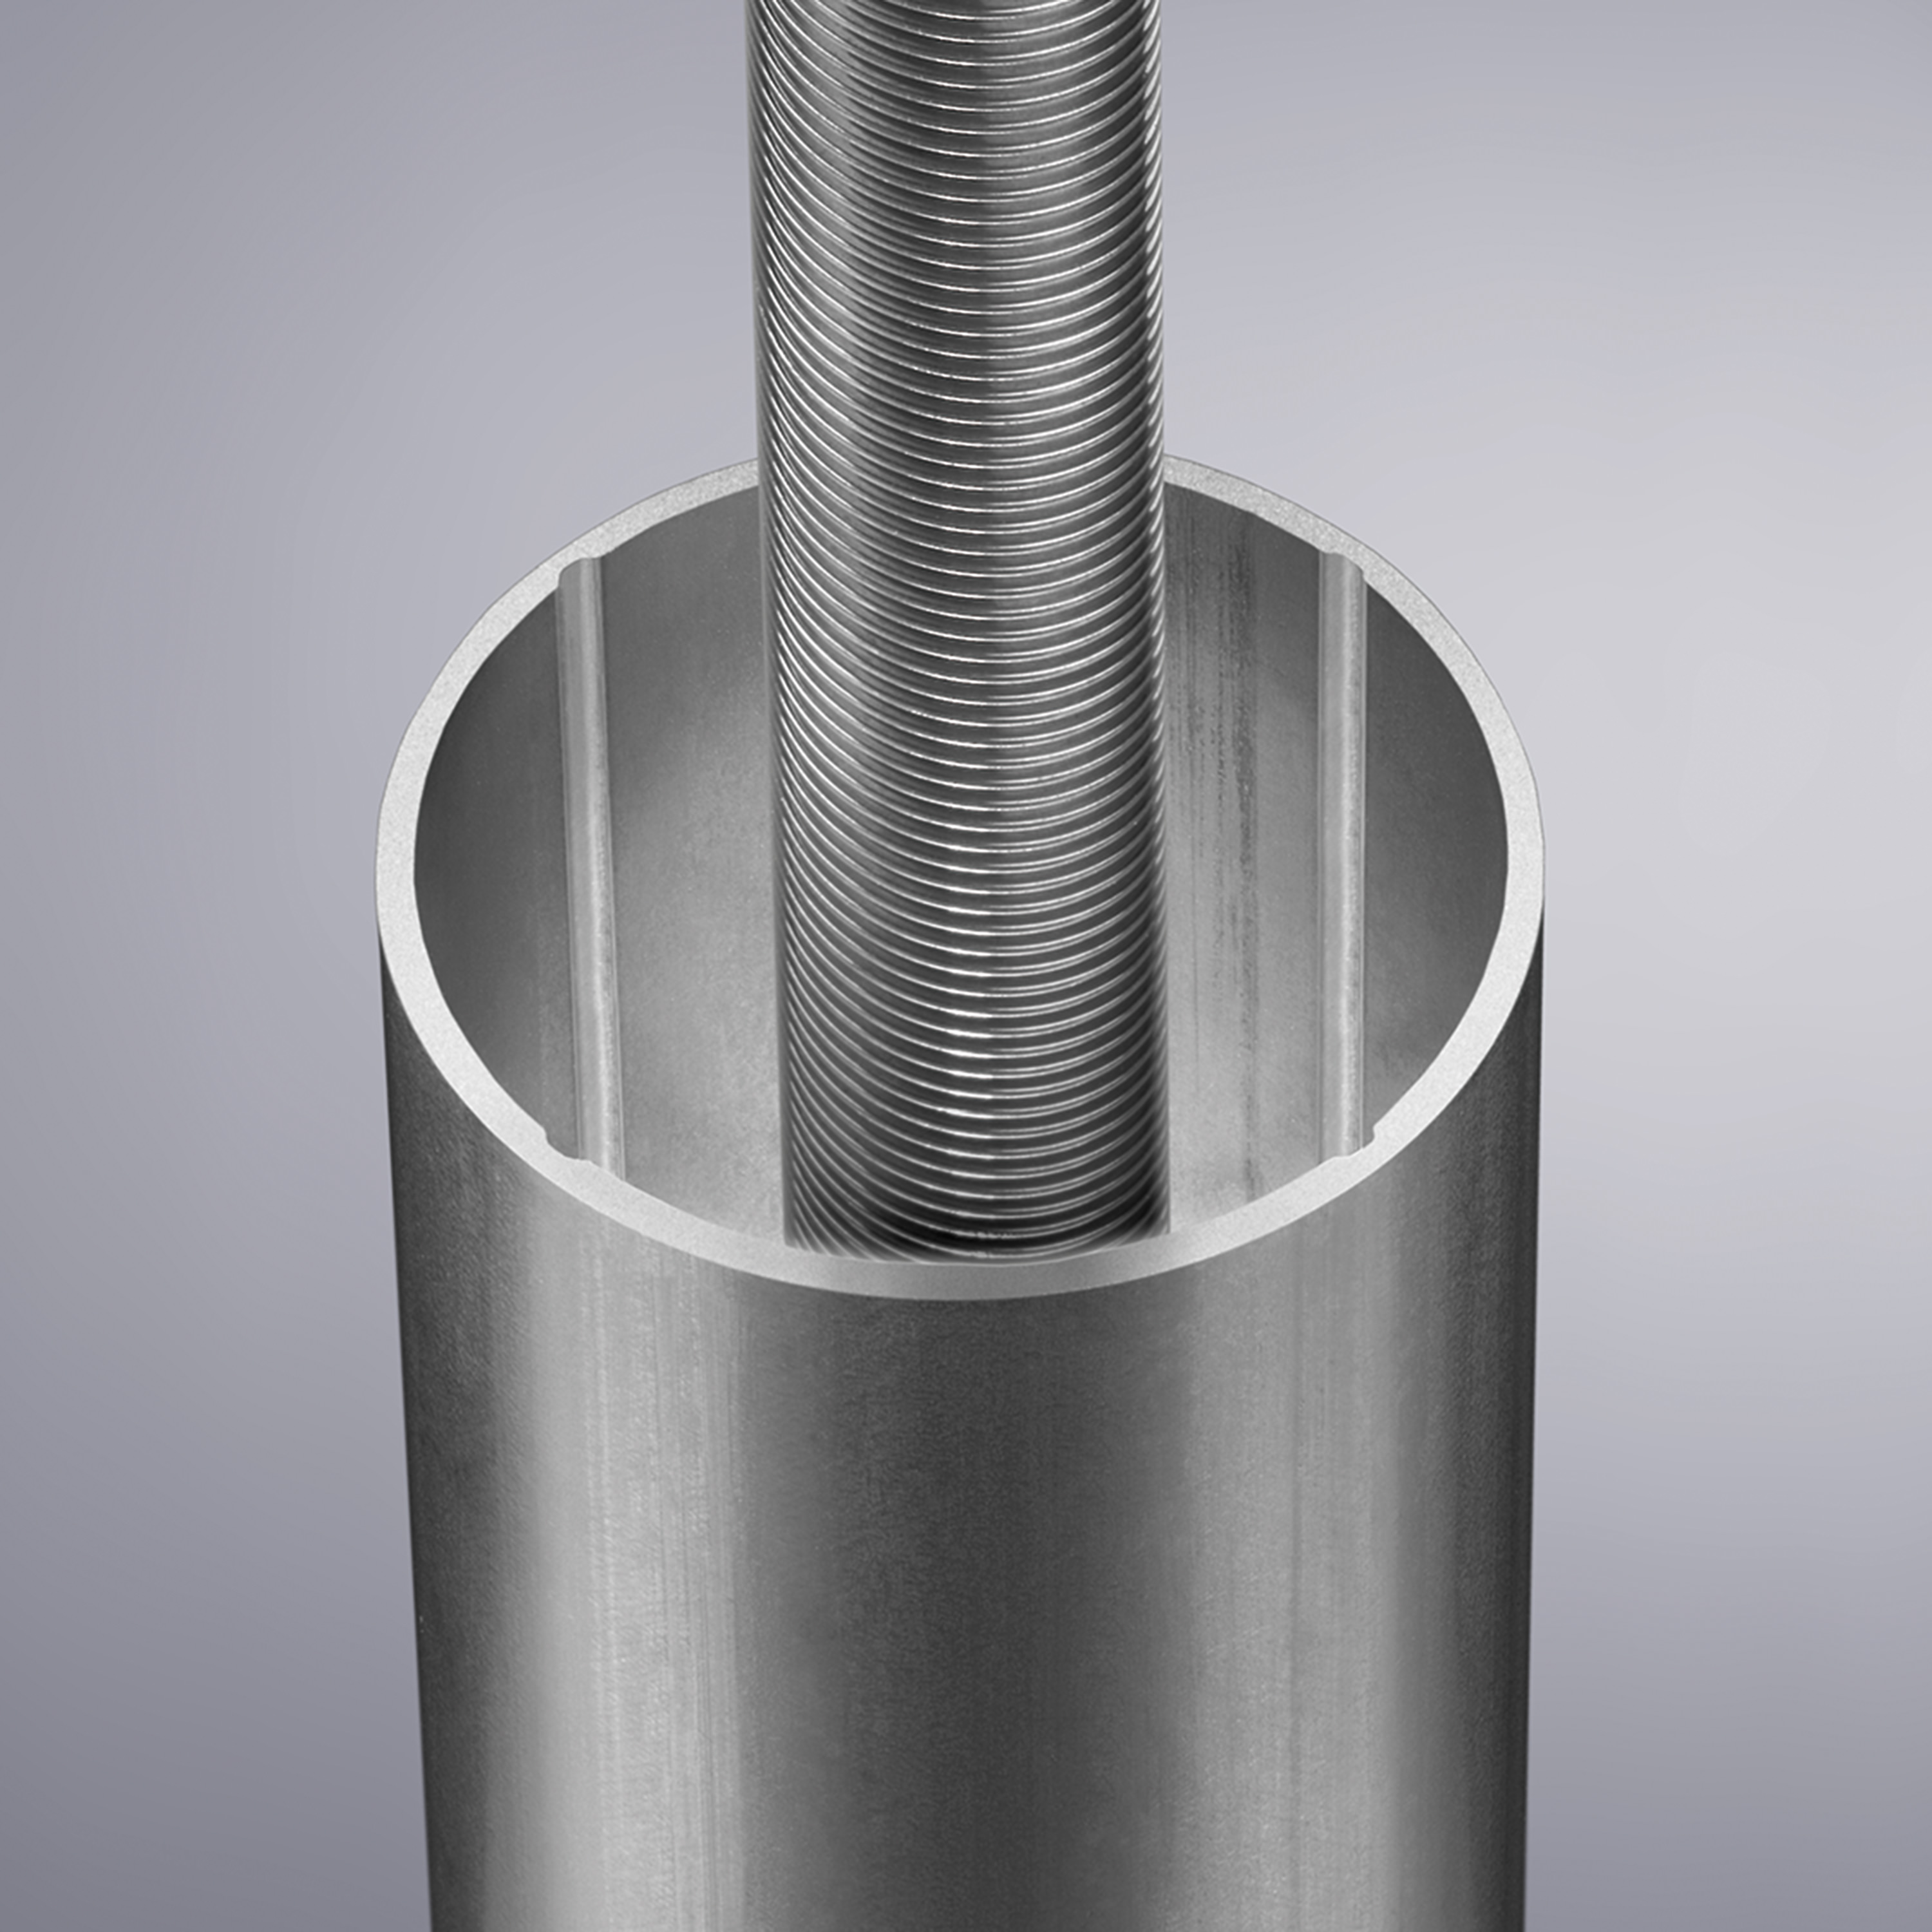 Special profile steel tubes for special functions